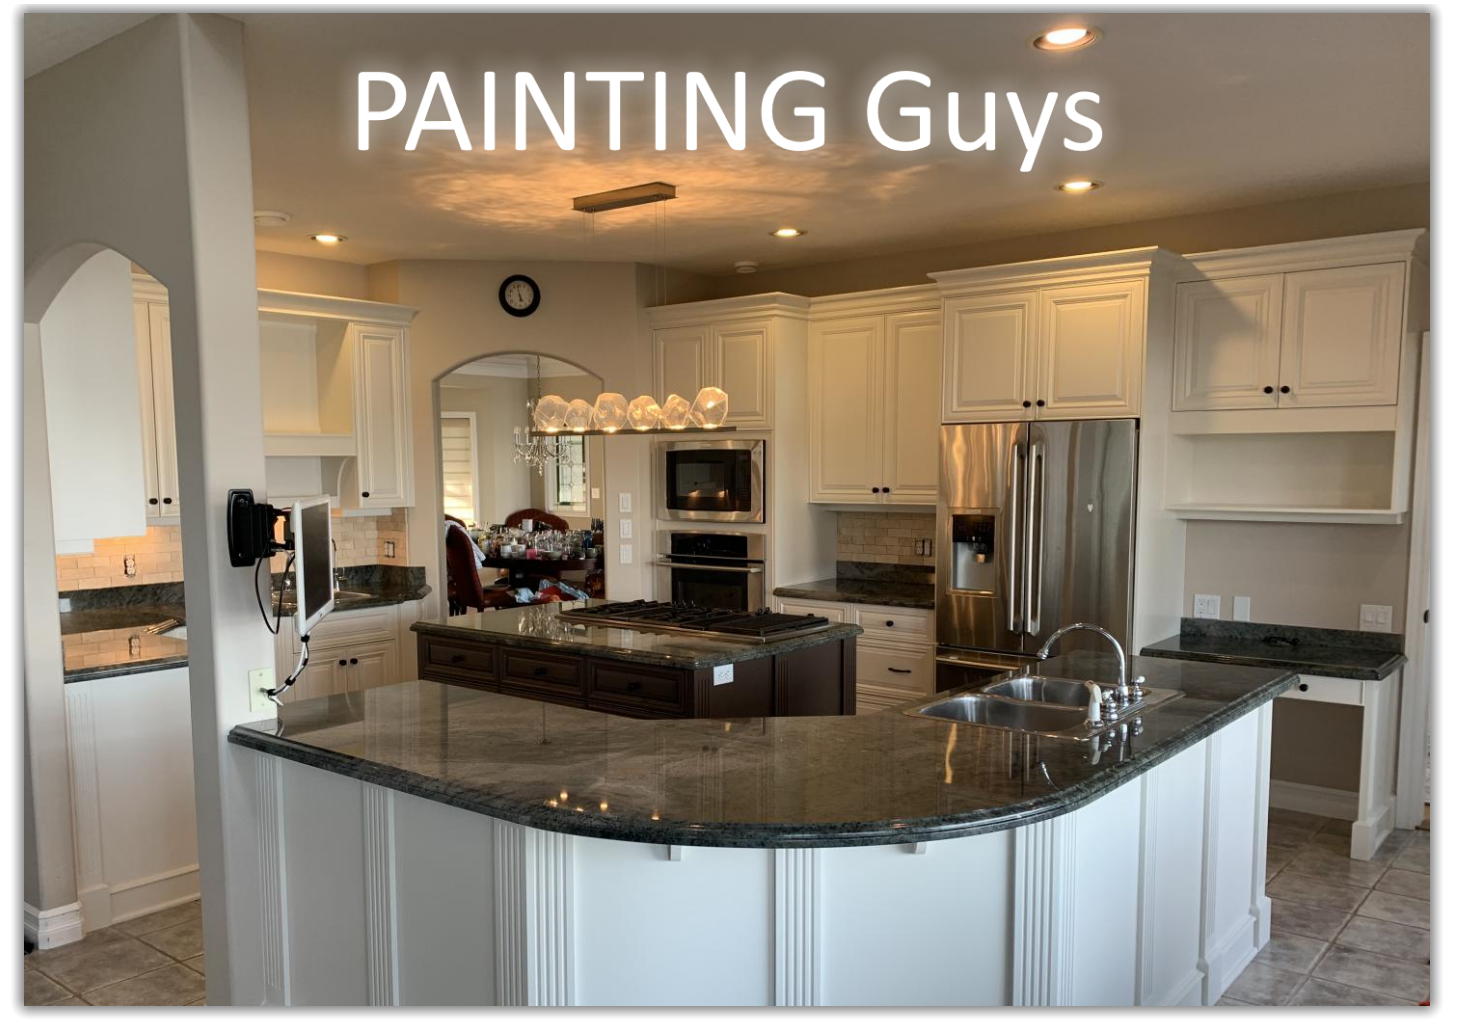 Kitchen Cabinet Painting Victoria Duncan Nanaimo Painting Guys